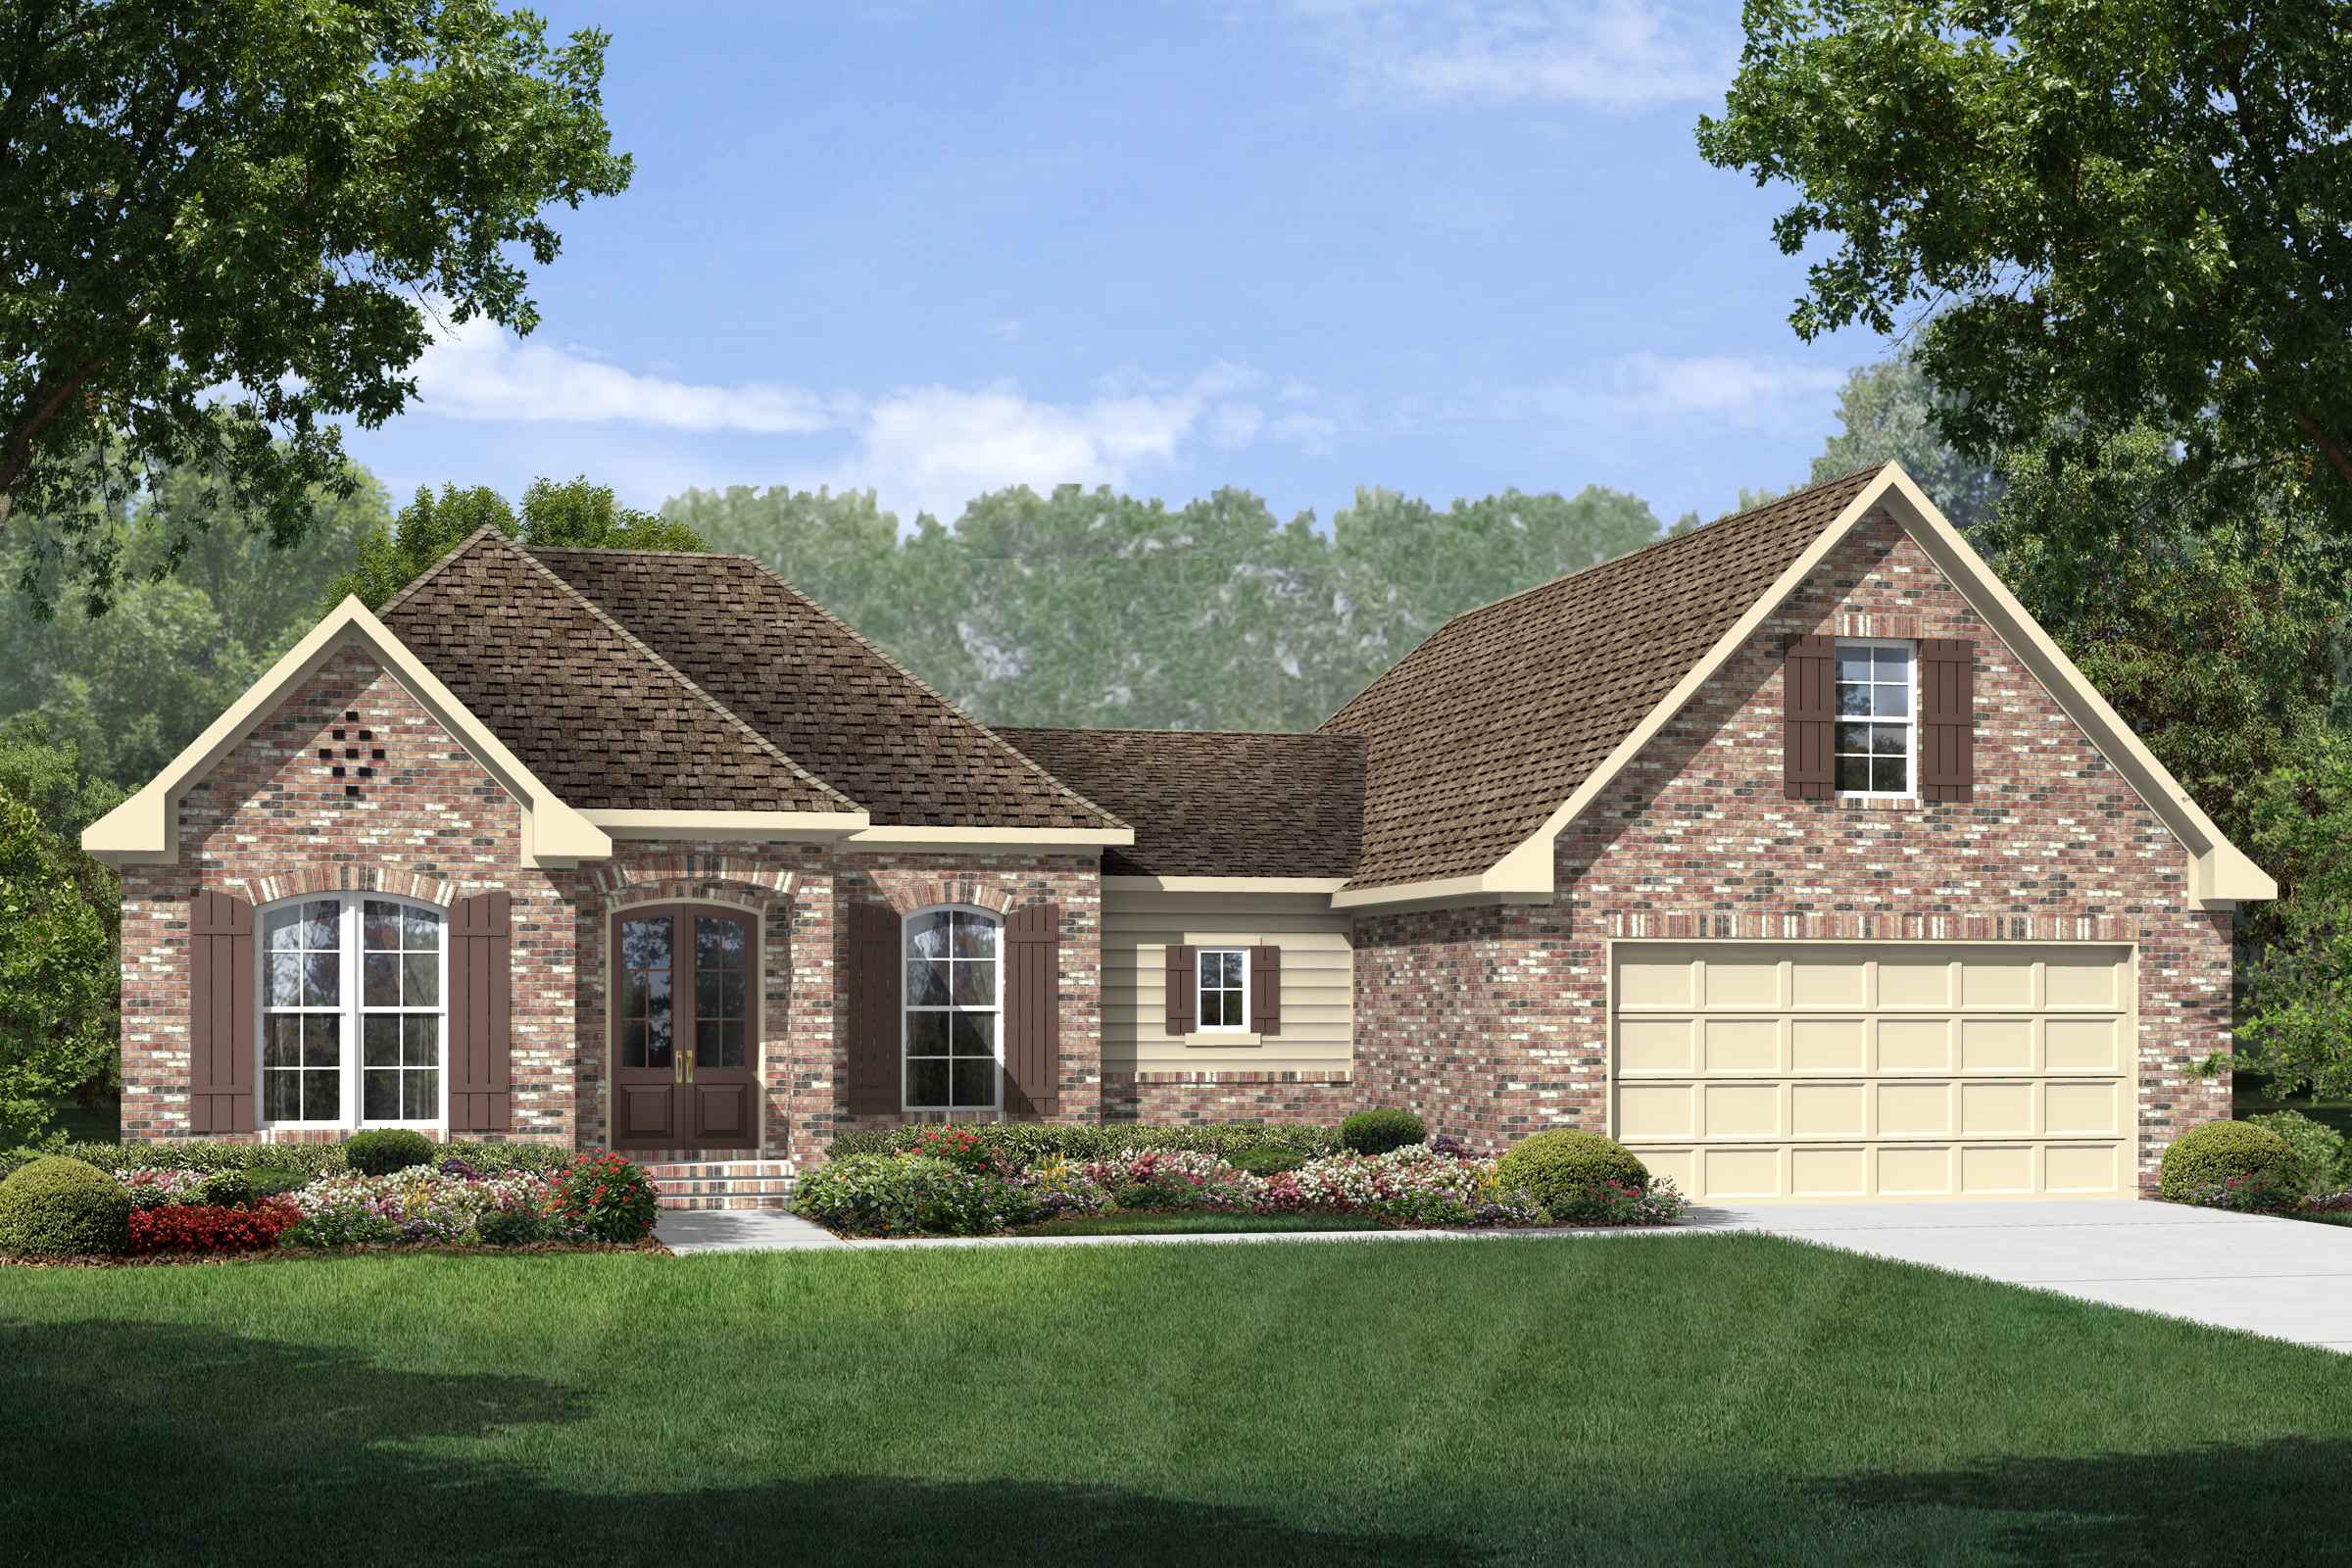 Country House Plan 1421145 3 Bedrm 1884 Sq Ft Home Plan